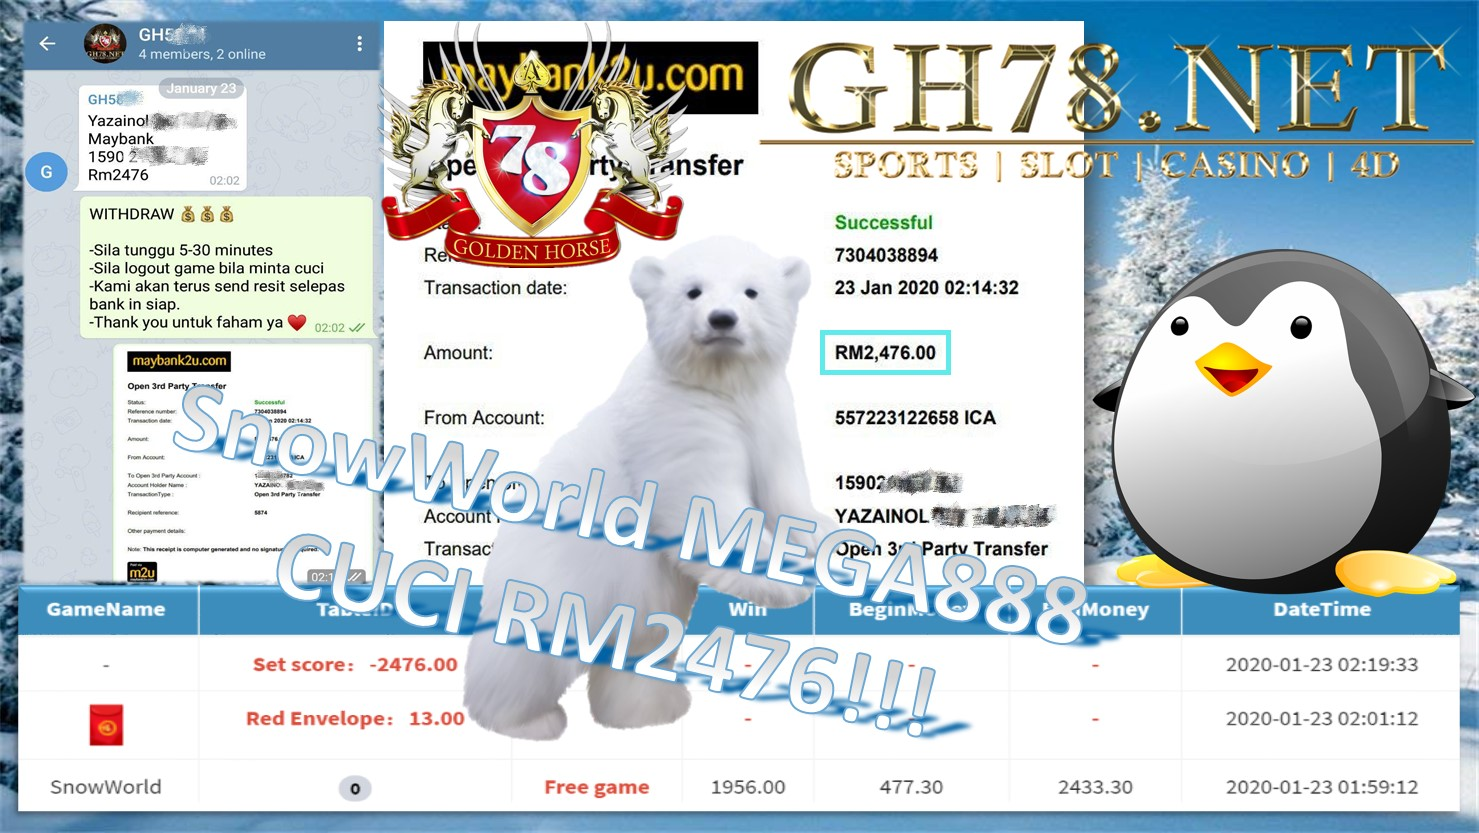 2020 NEW YEAR !!! MEMBER MAIN MEGA888 , SNOW WORLD ,WITHDRAW RM2476 !!!